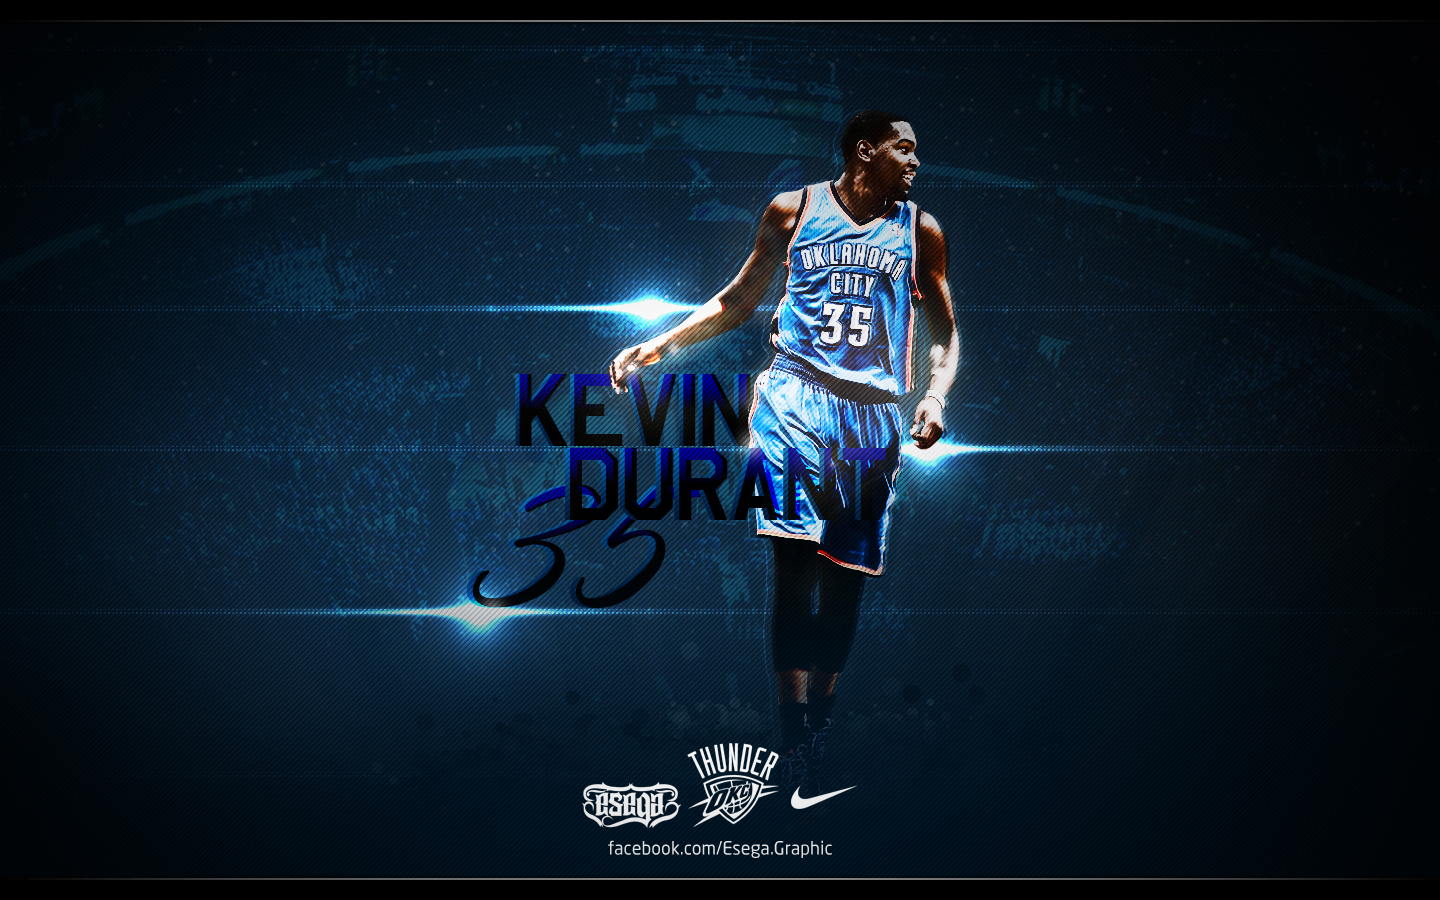 wallpaper other 2013 2015 esegagraphic kevin durant wallpaper link no 1440x900